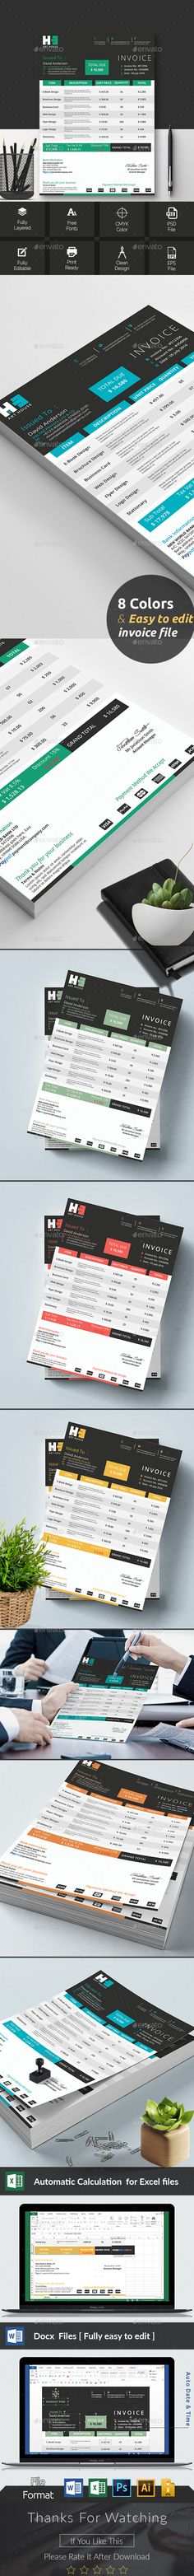 How To Make A Invoice In Excel Invoice Excel  Pinterest  Template Brand Identity And Ai Illustrator